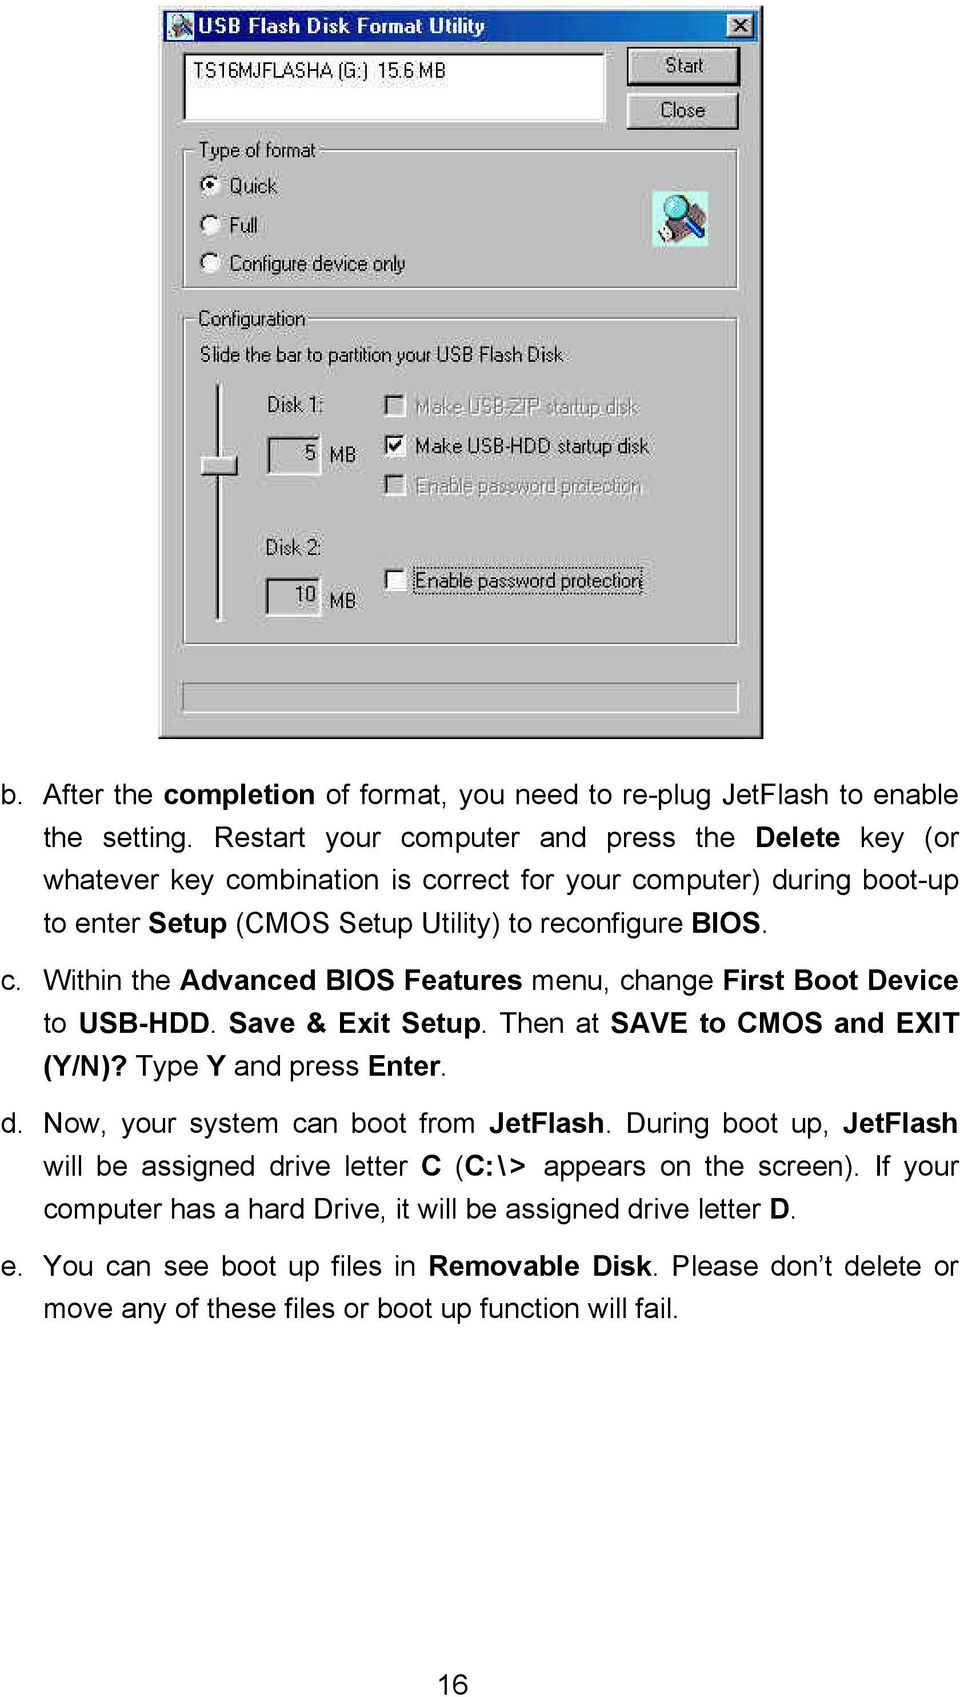 Save & Exit Setup. Then at SAVE to CMOS and EXIT (Y/N)? Type Y and press Enter. d. Now, your system can boot from JetFlash.